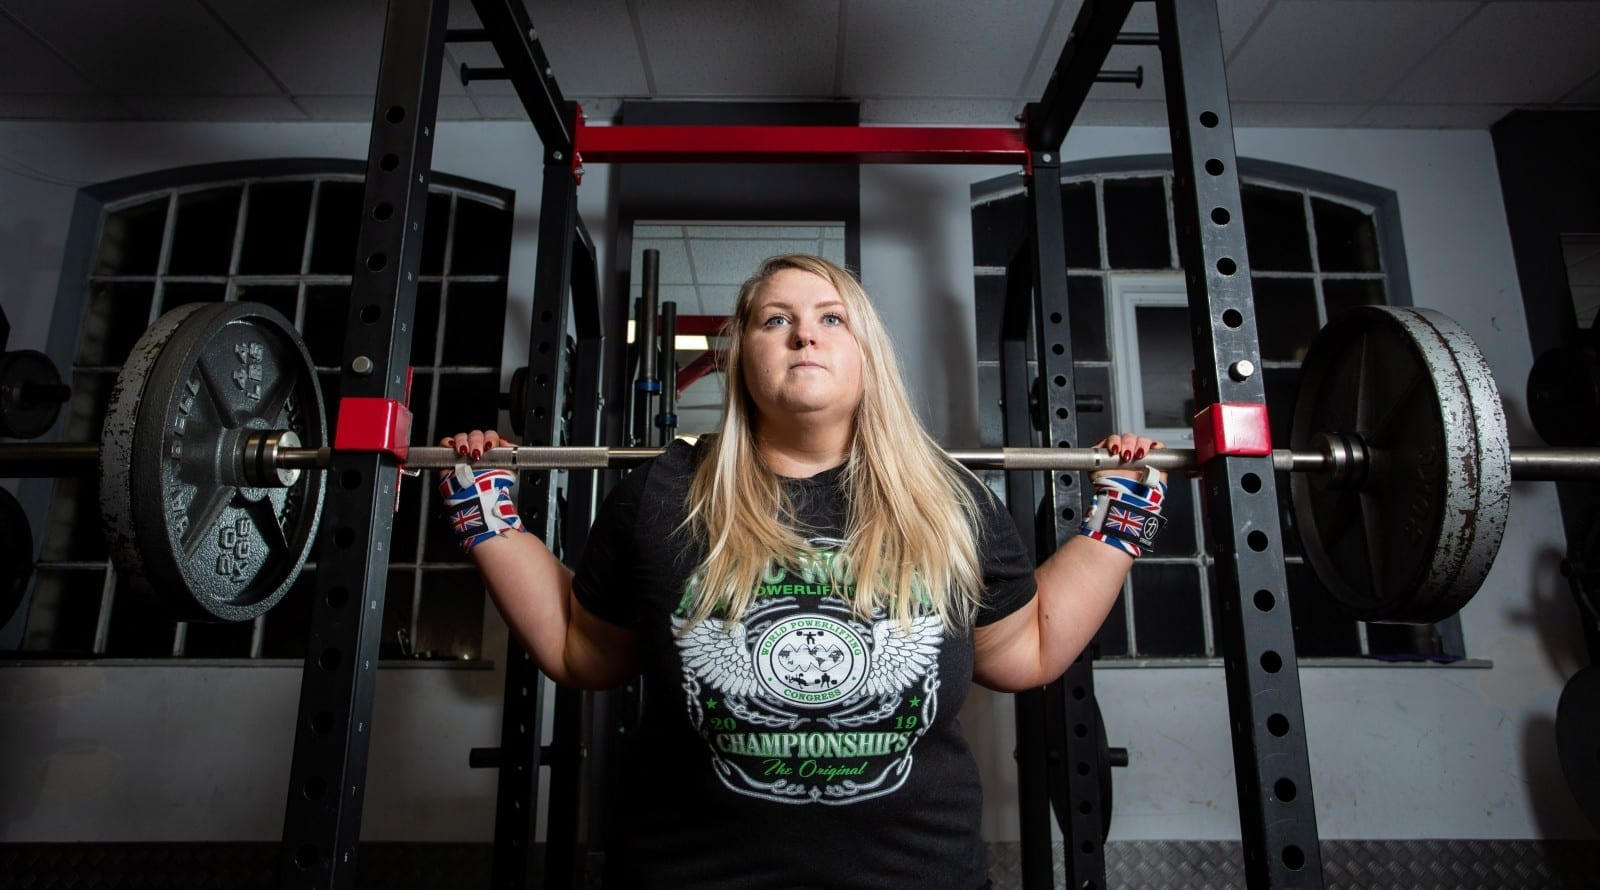 "'I'm Dedicated To Bettering Myself' – Self-Confessed ""Unlikely Athlete"" Has Become A Powerlifting World Champion Just ONE YEAR After Taking Up The Sport"